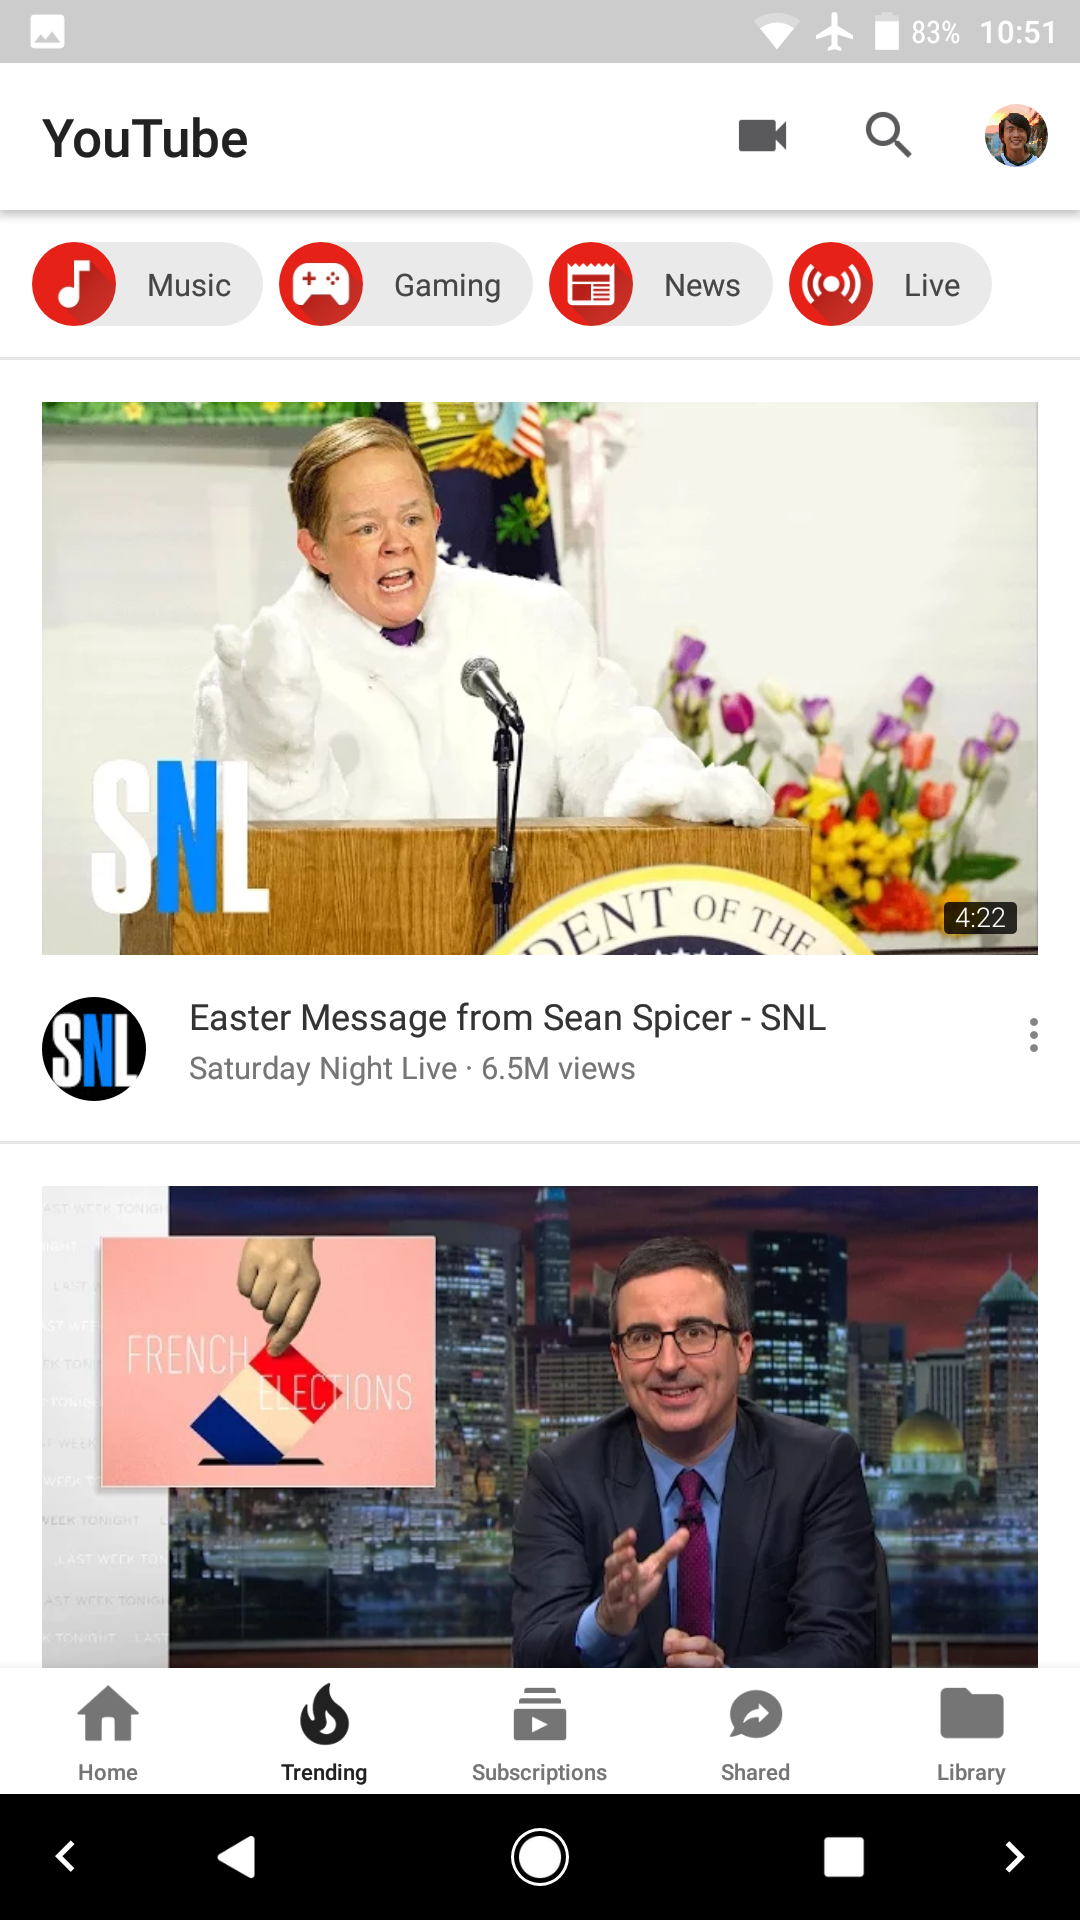 YouTube 12 41 53 hints at full screen pinch gesture